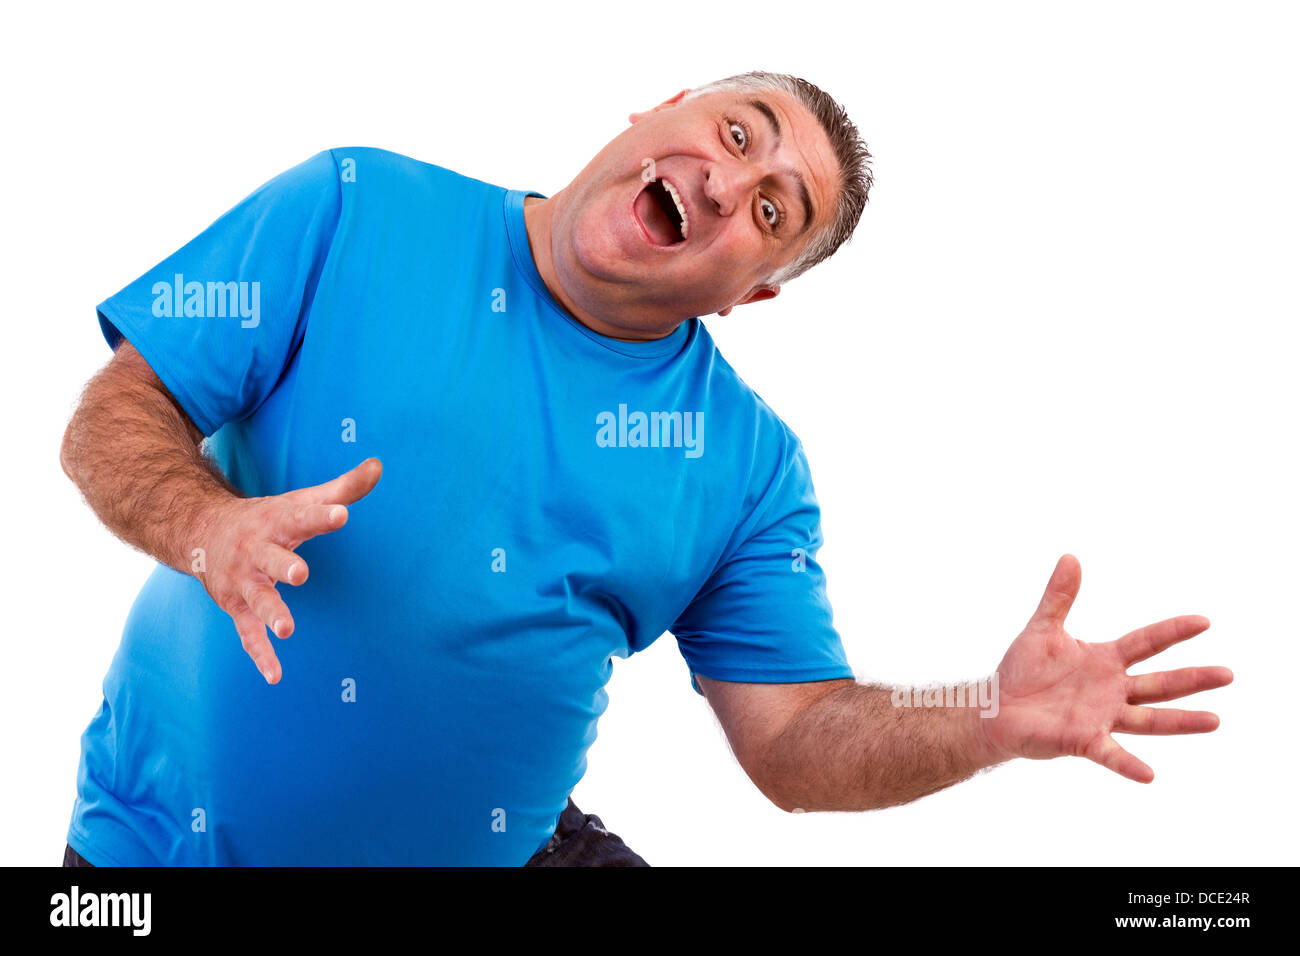 Portrait of an expressive man joking, isolated white background - Stock Image